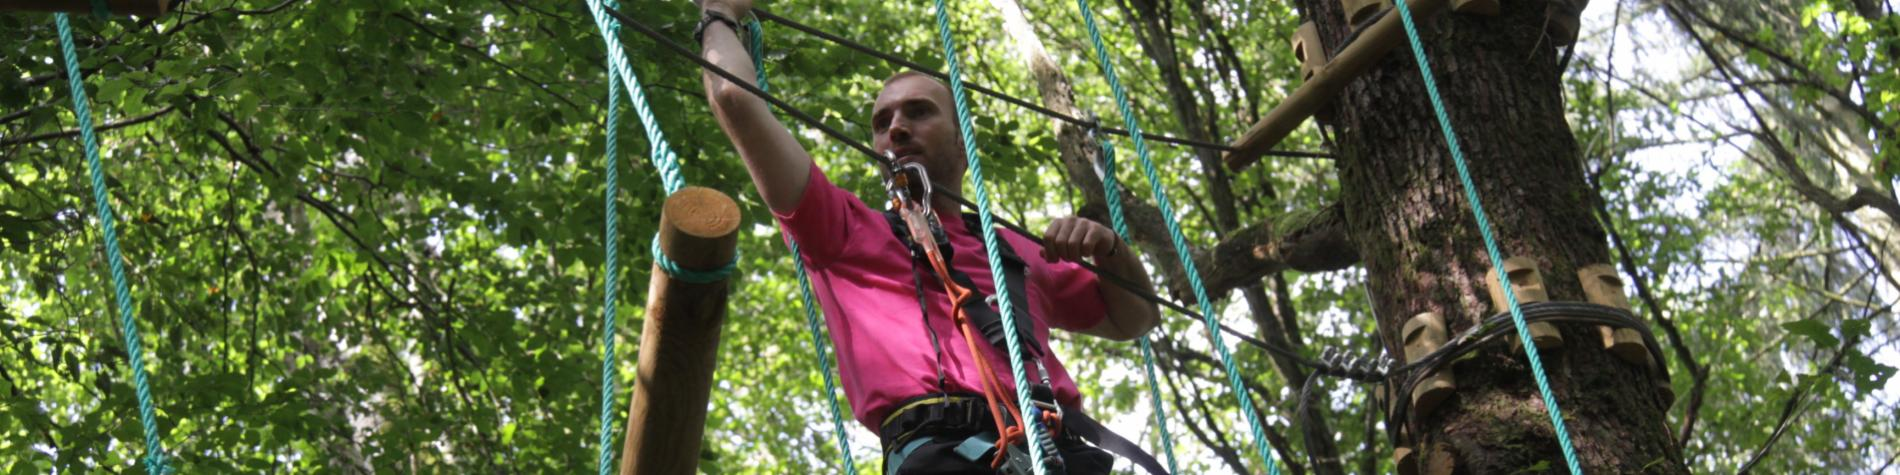 Accrobranche - Ardenne aventures